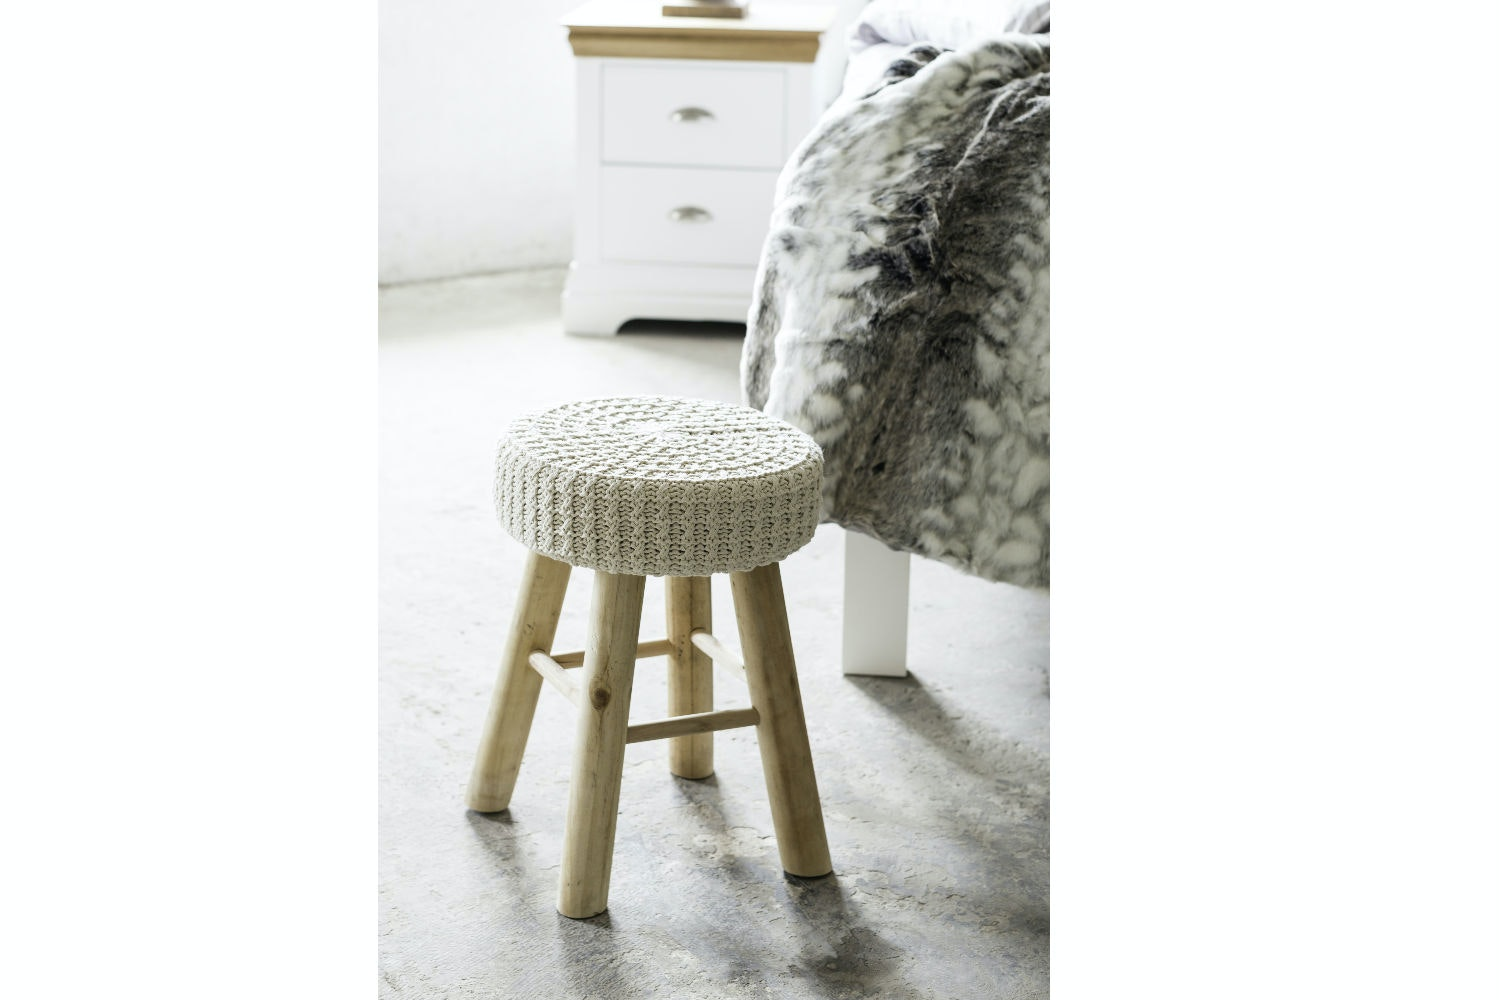 Stool with Cotton Seat